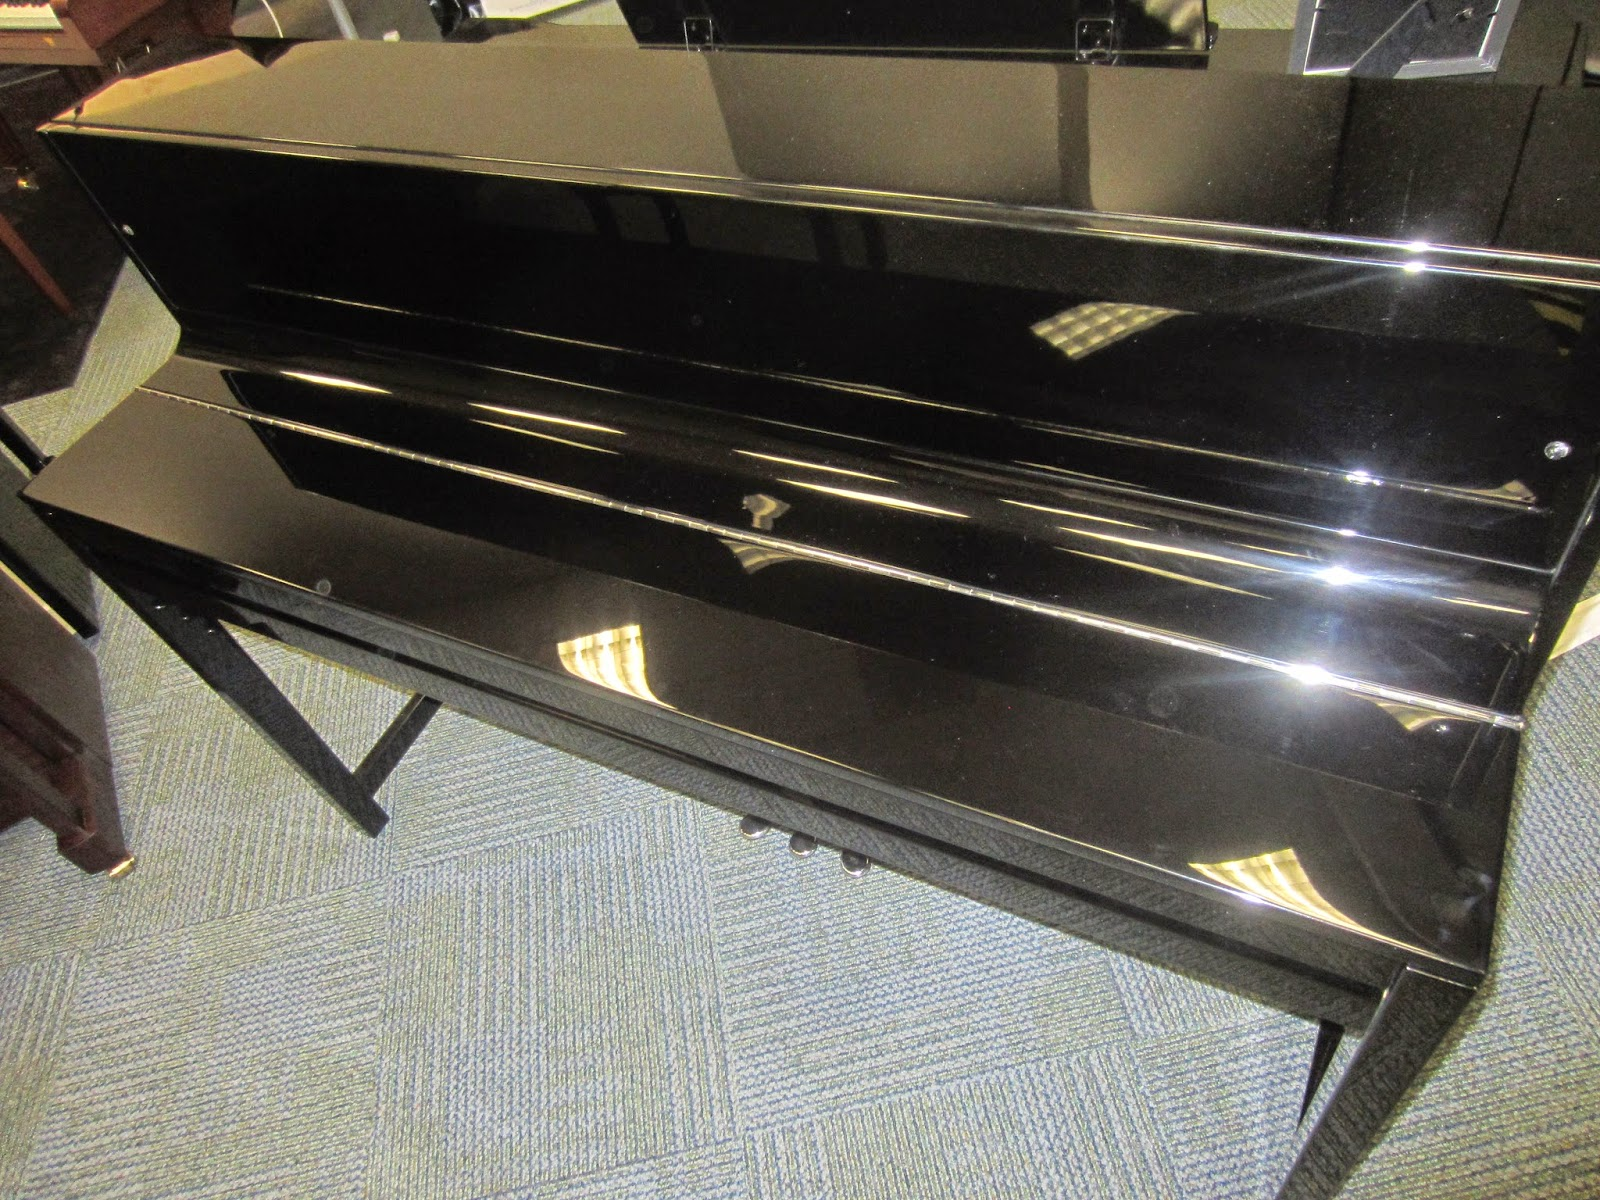 Samick Ebony 3 hybrid digital upright piano